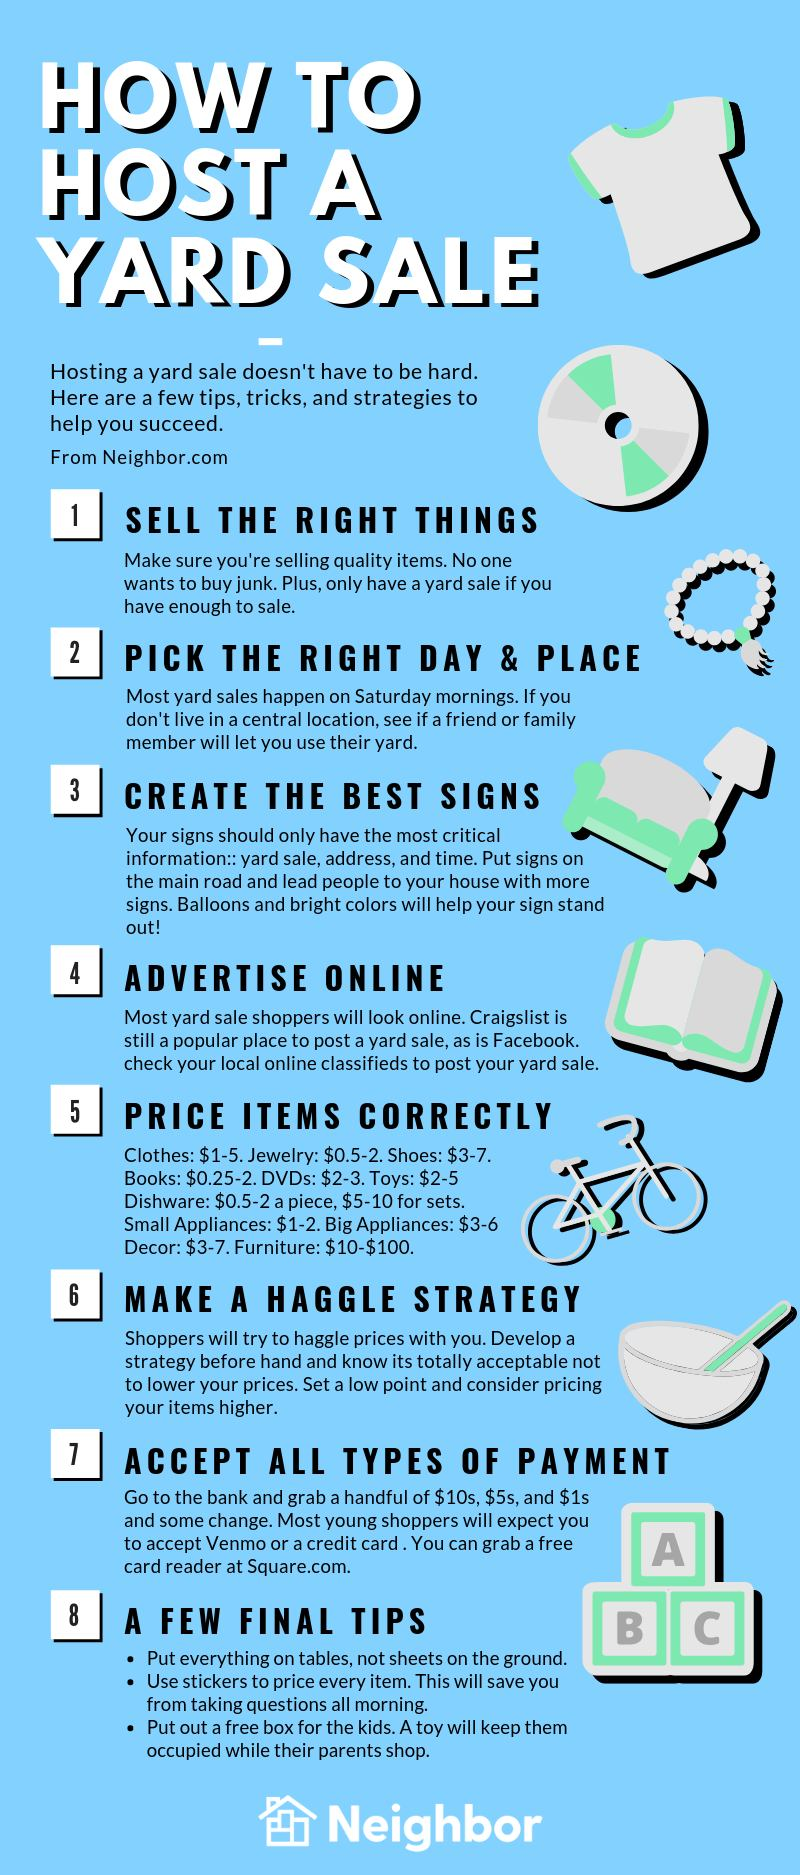 How to Host a Yard Sale infographic